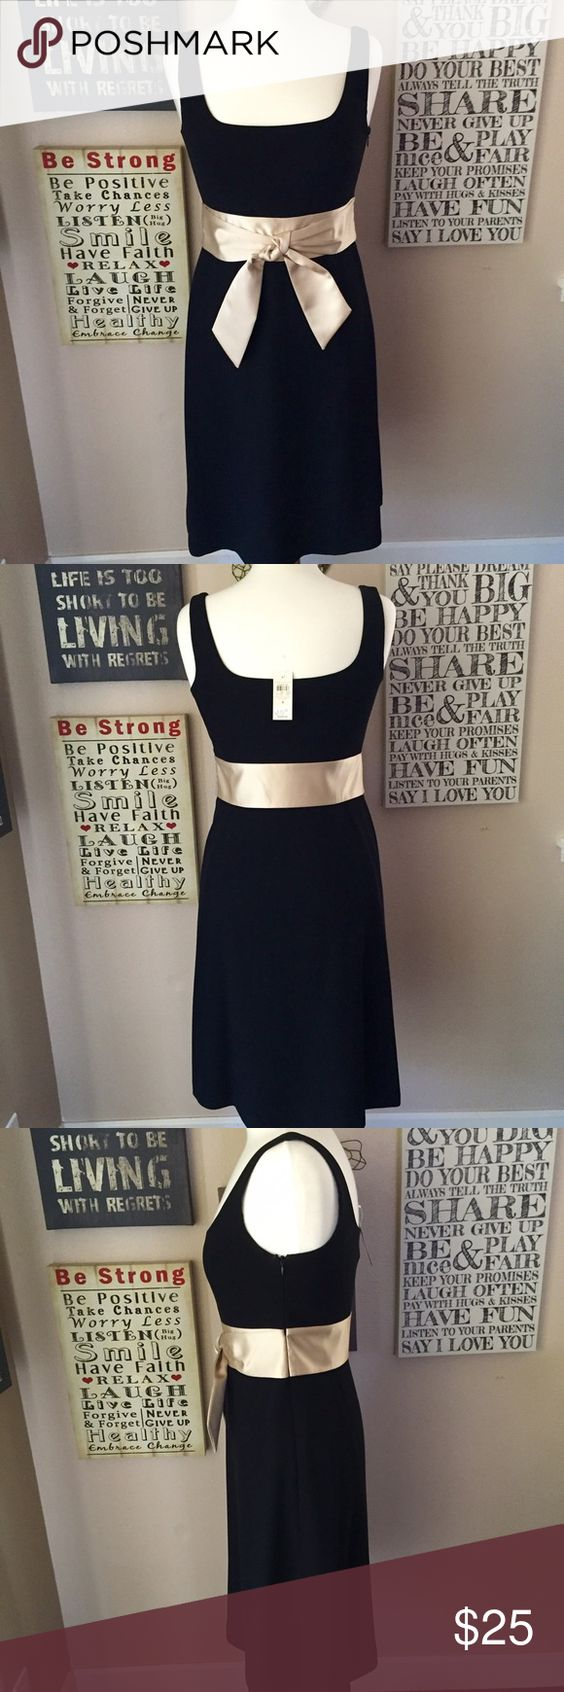 Ann Taylor Black Cocktail Dress with Beige Sash Ann Taylor black size 4, polyester cocktail dress with satin beige sash, sleeveless, square lining on the inside of dress, hidden zipper on left side, length of dress is 32 inches right on the knees, comfortable, very classy, great for holidays, fine dining dinners, weddings, you pick Ann Taylor Dresses Midi